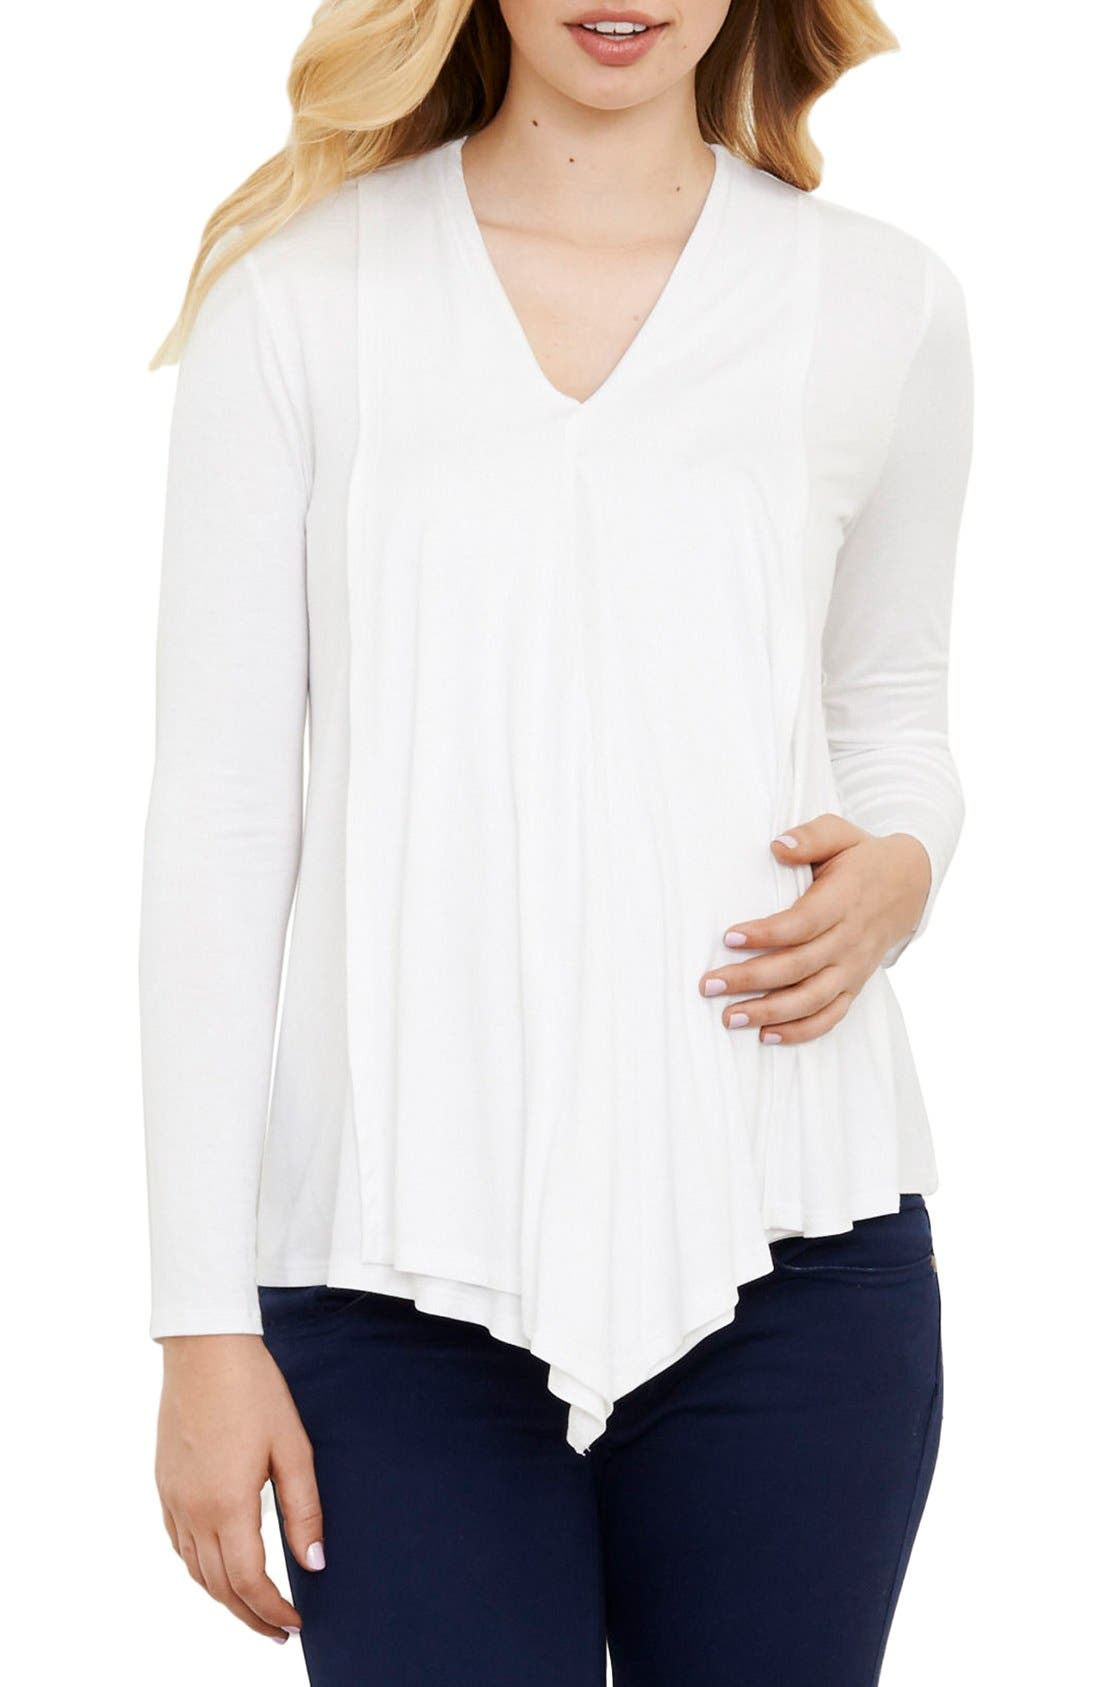 Maternal America Draped Nursing Top